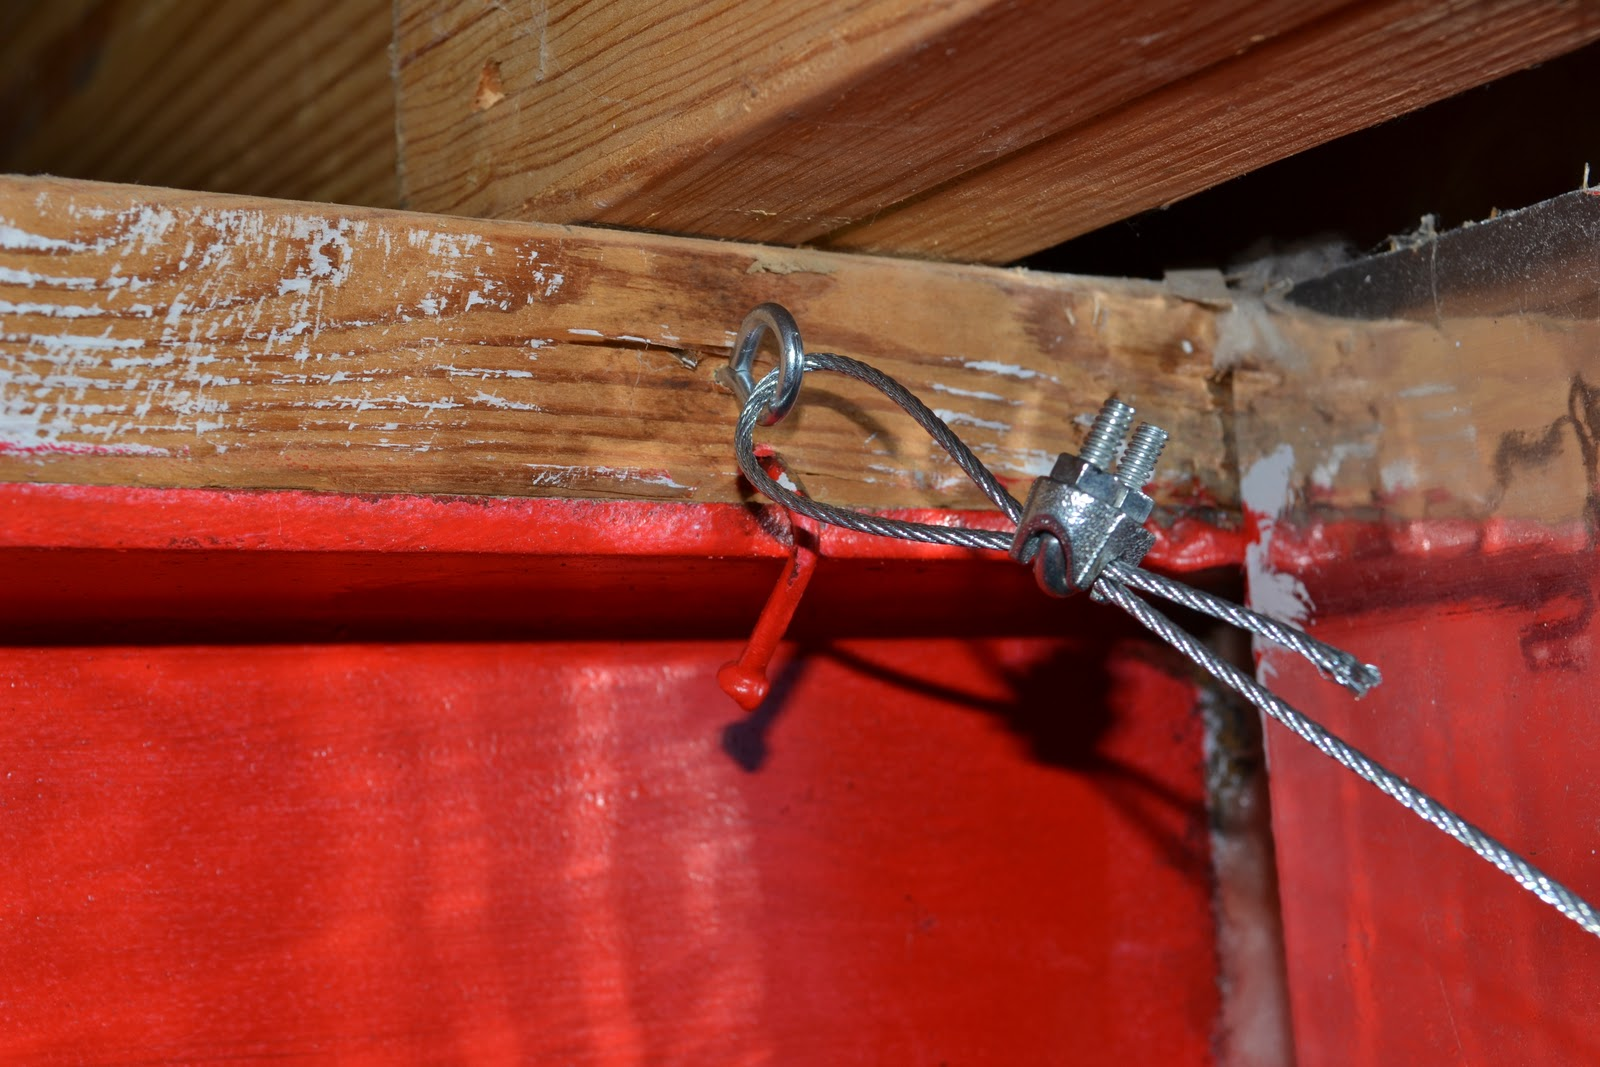 Basement Playroom Update And Wire Curtain Rod Diy Sunny Carrier Pre Wiring Looped The Other End With This Neato Hook That You Can Twist To Make Really Tight